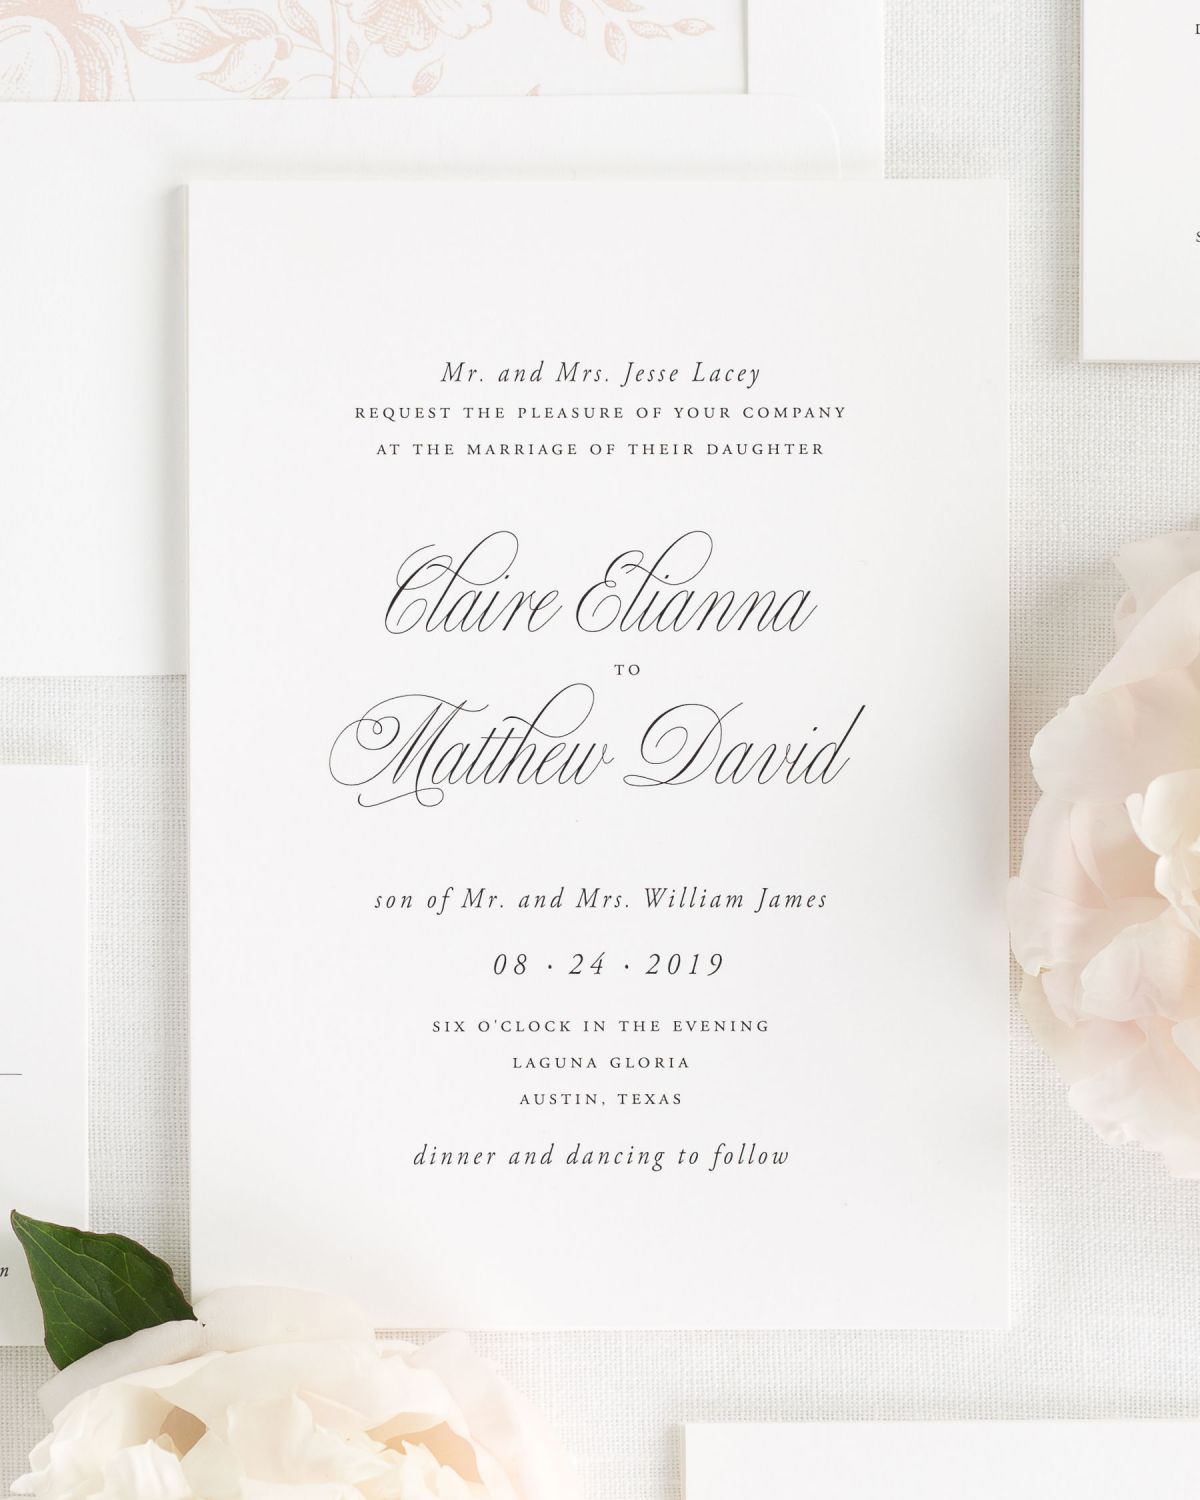 Simple Wedding Invitations with Small Script for the Names